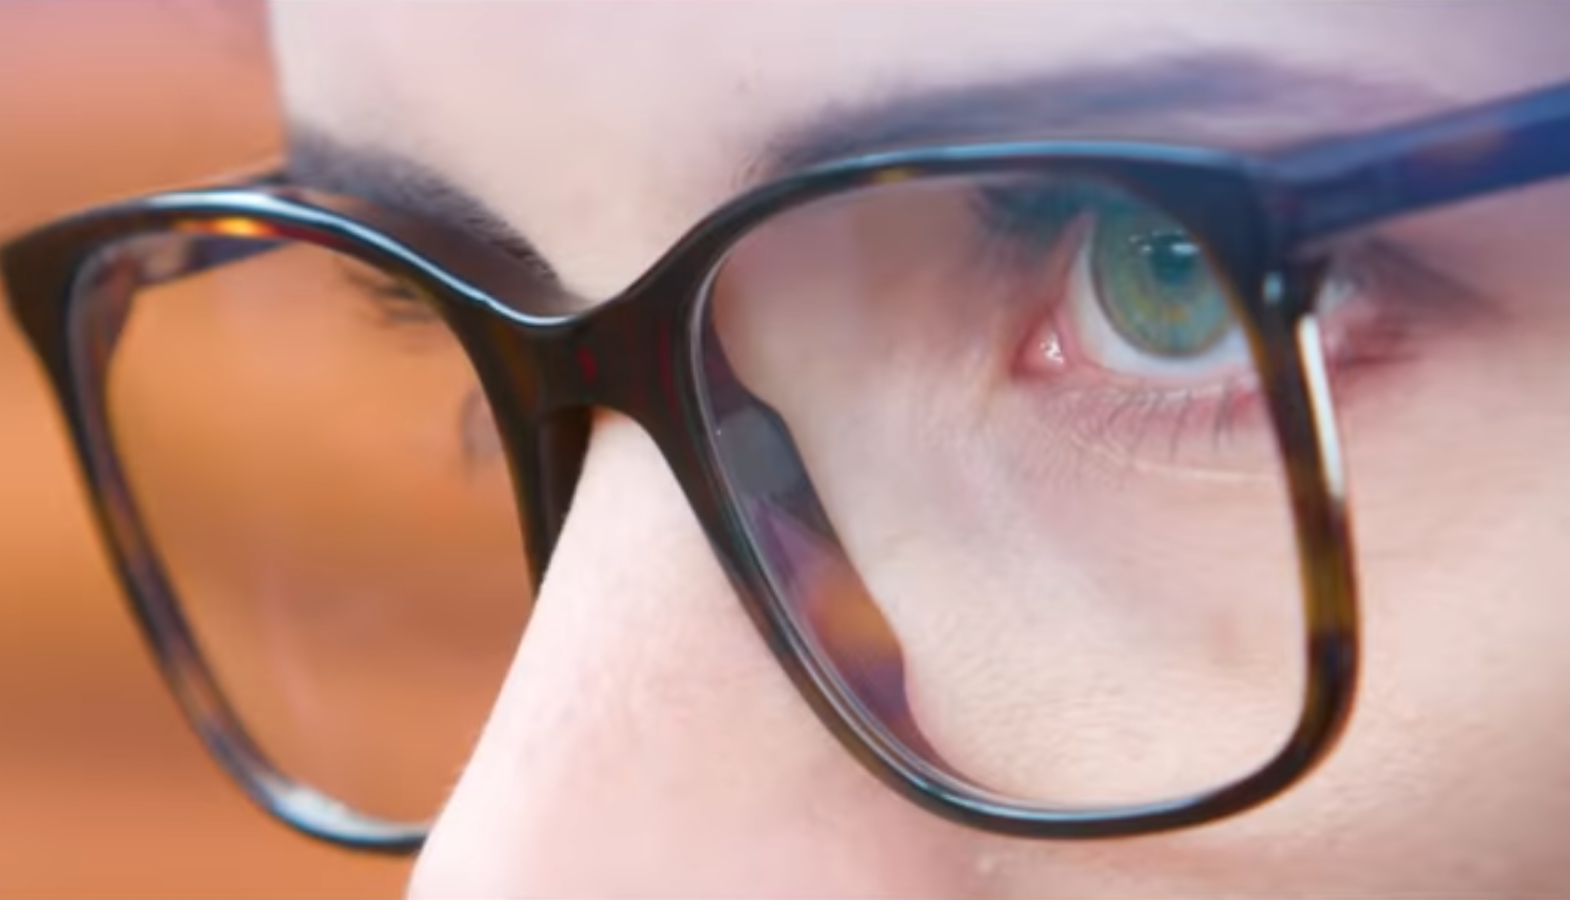 Smart glasses project images directly onto the retina